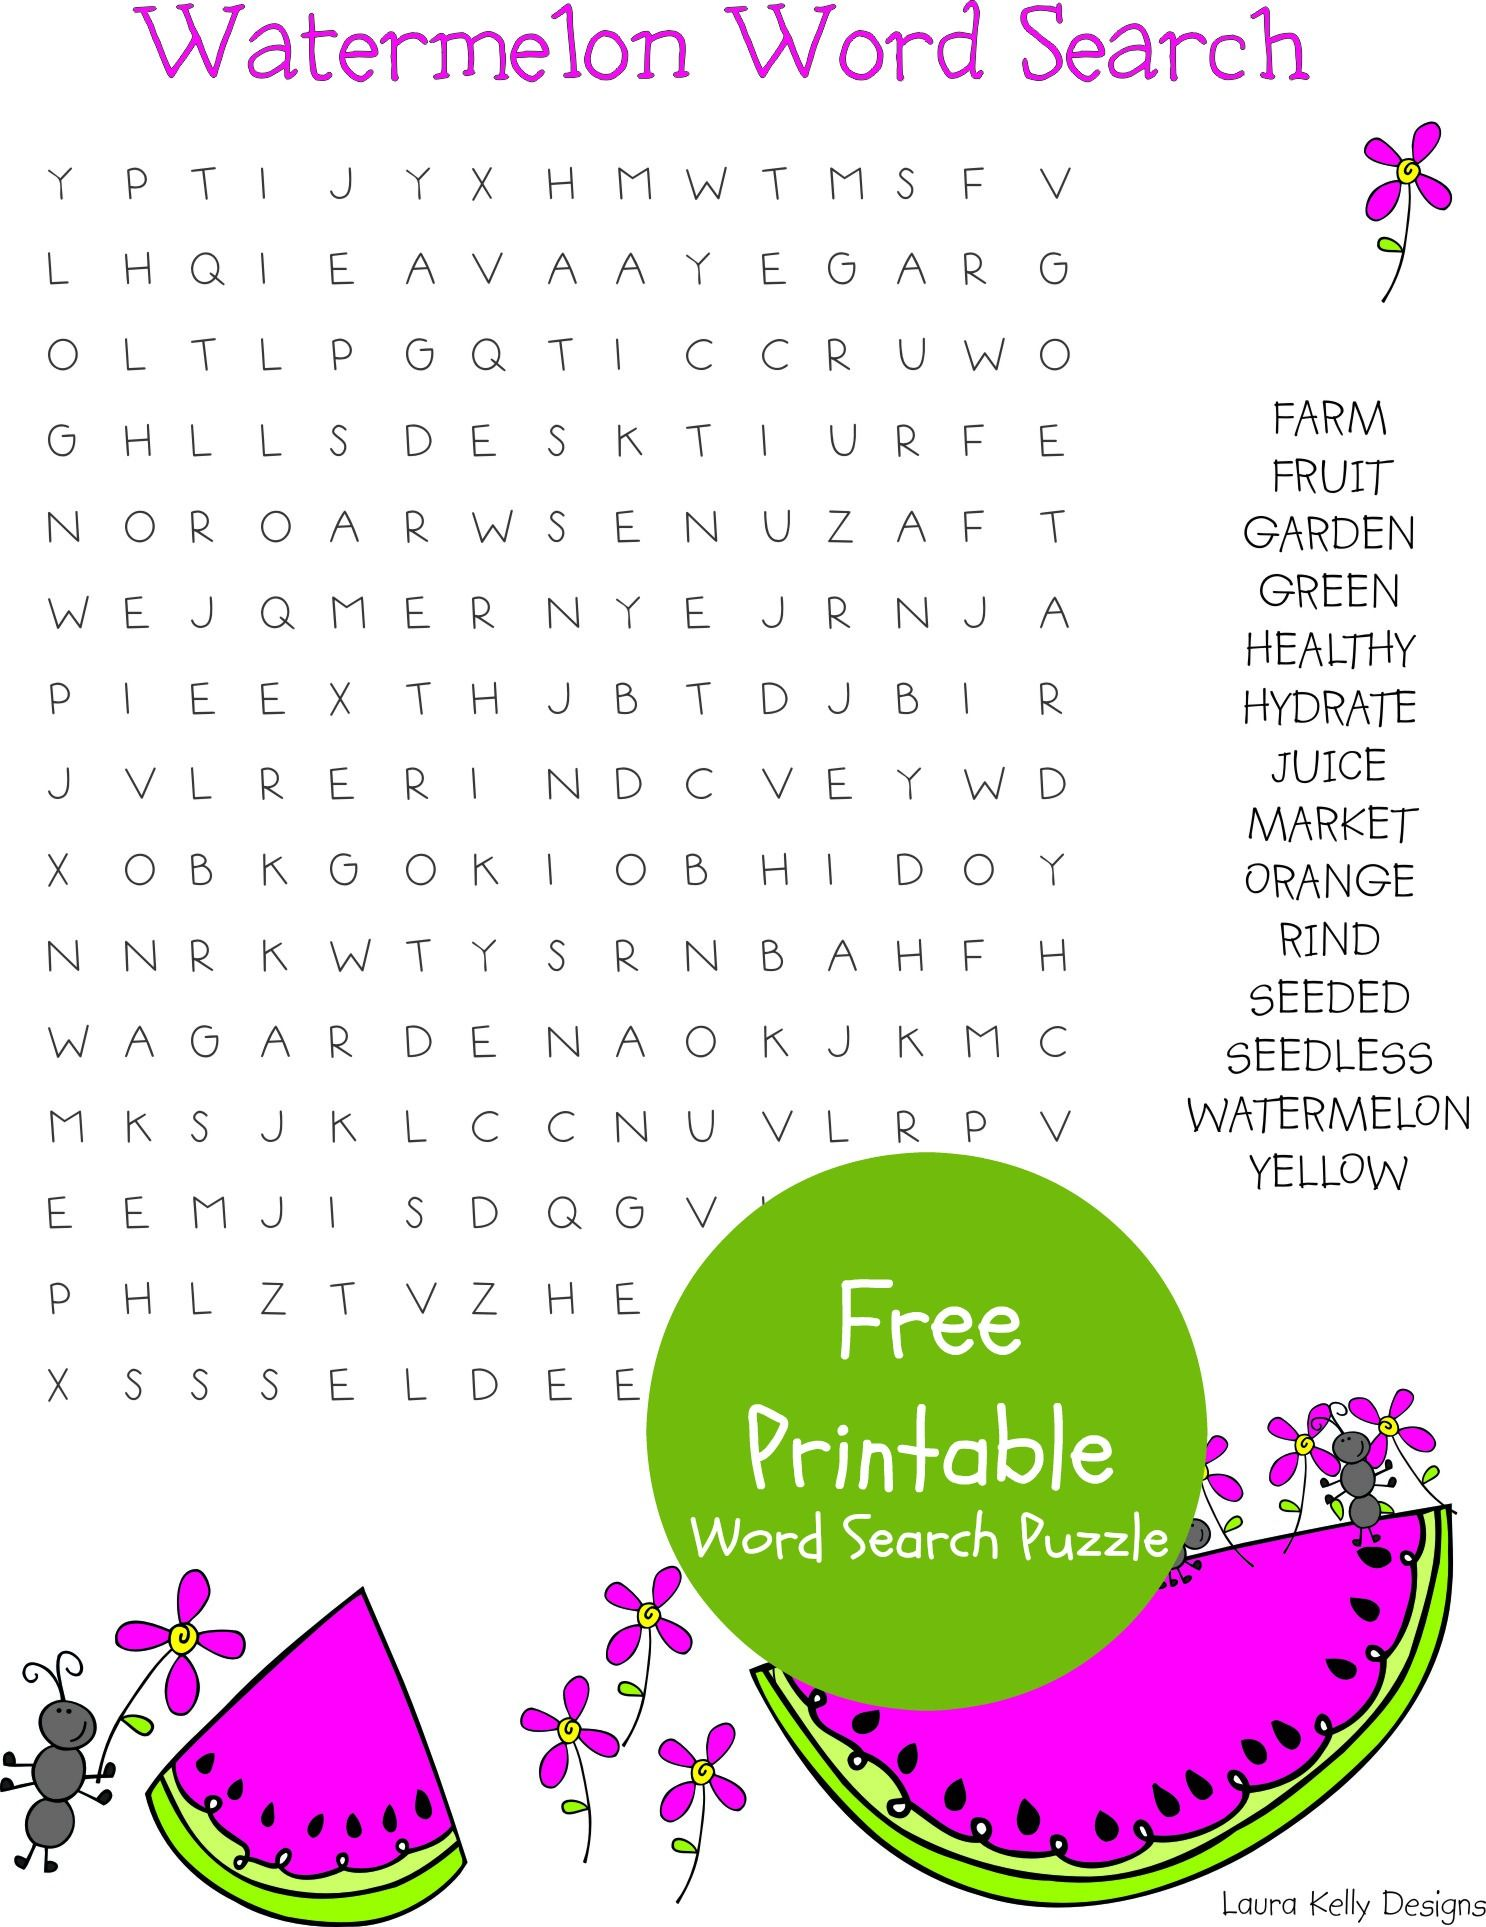 Watermelon Word Search Puzzle Free Printable Free Printables Watermelon Diy Free [ 1927 x 1486 Pixel ]